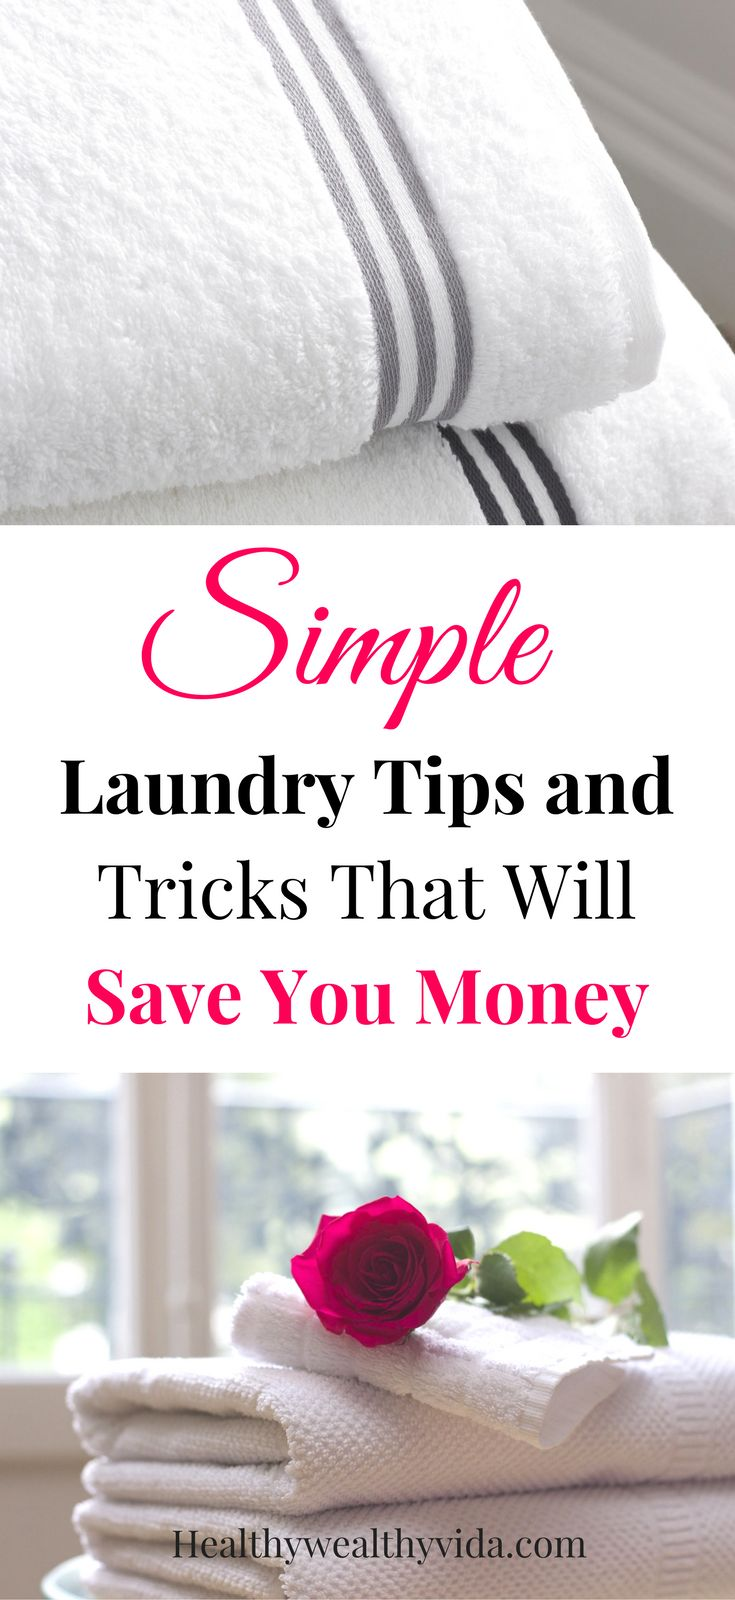 Laundry tips and tricks to save time and money, remove stains, get whites whiter and darks darker